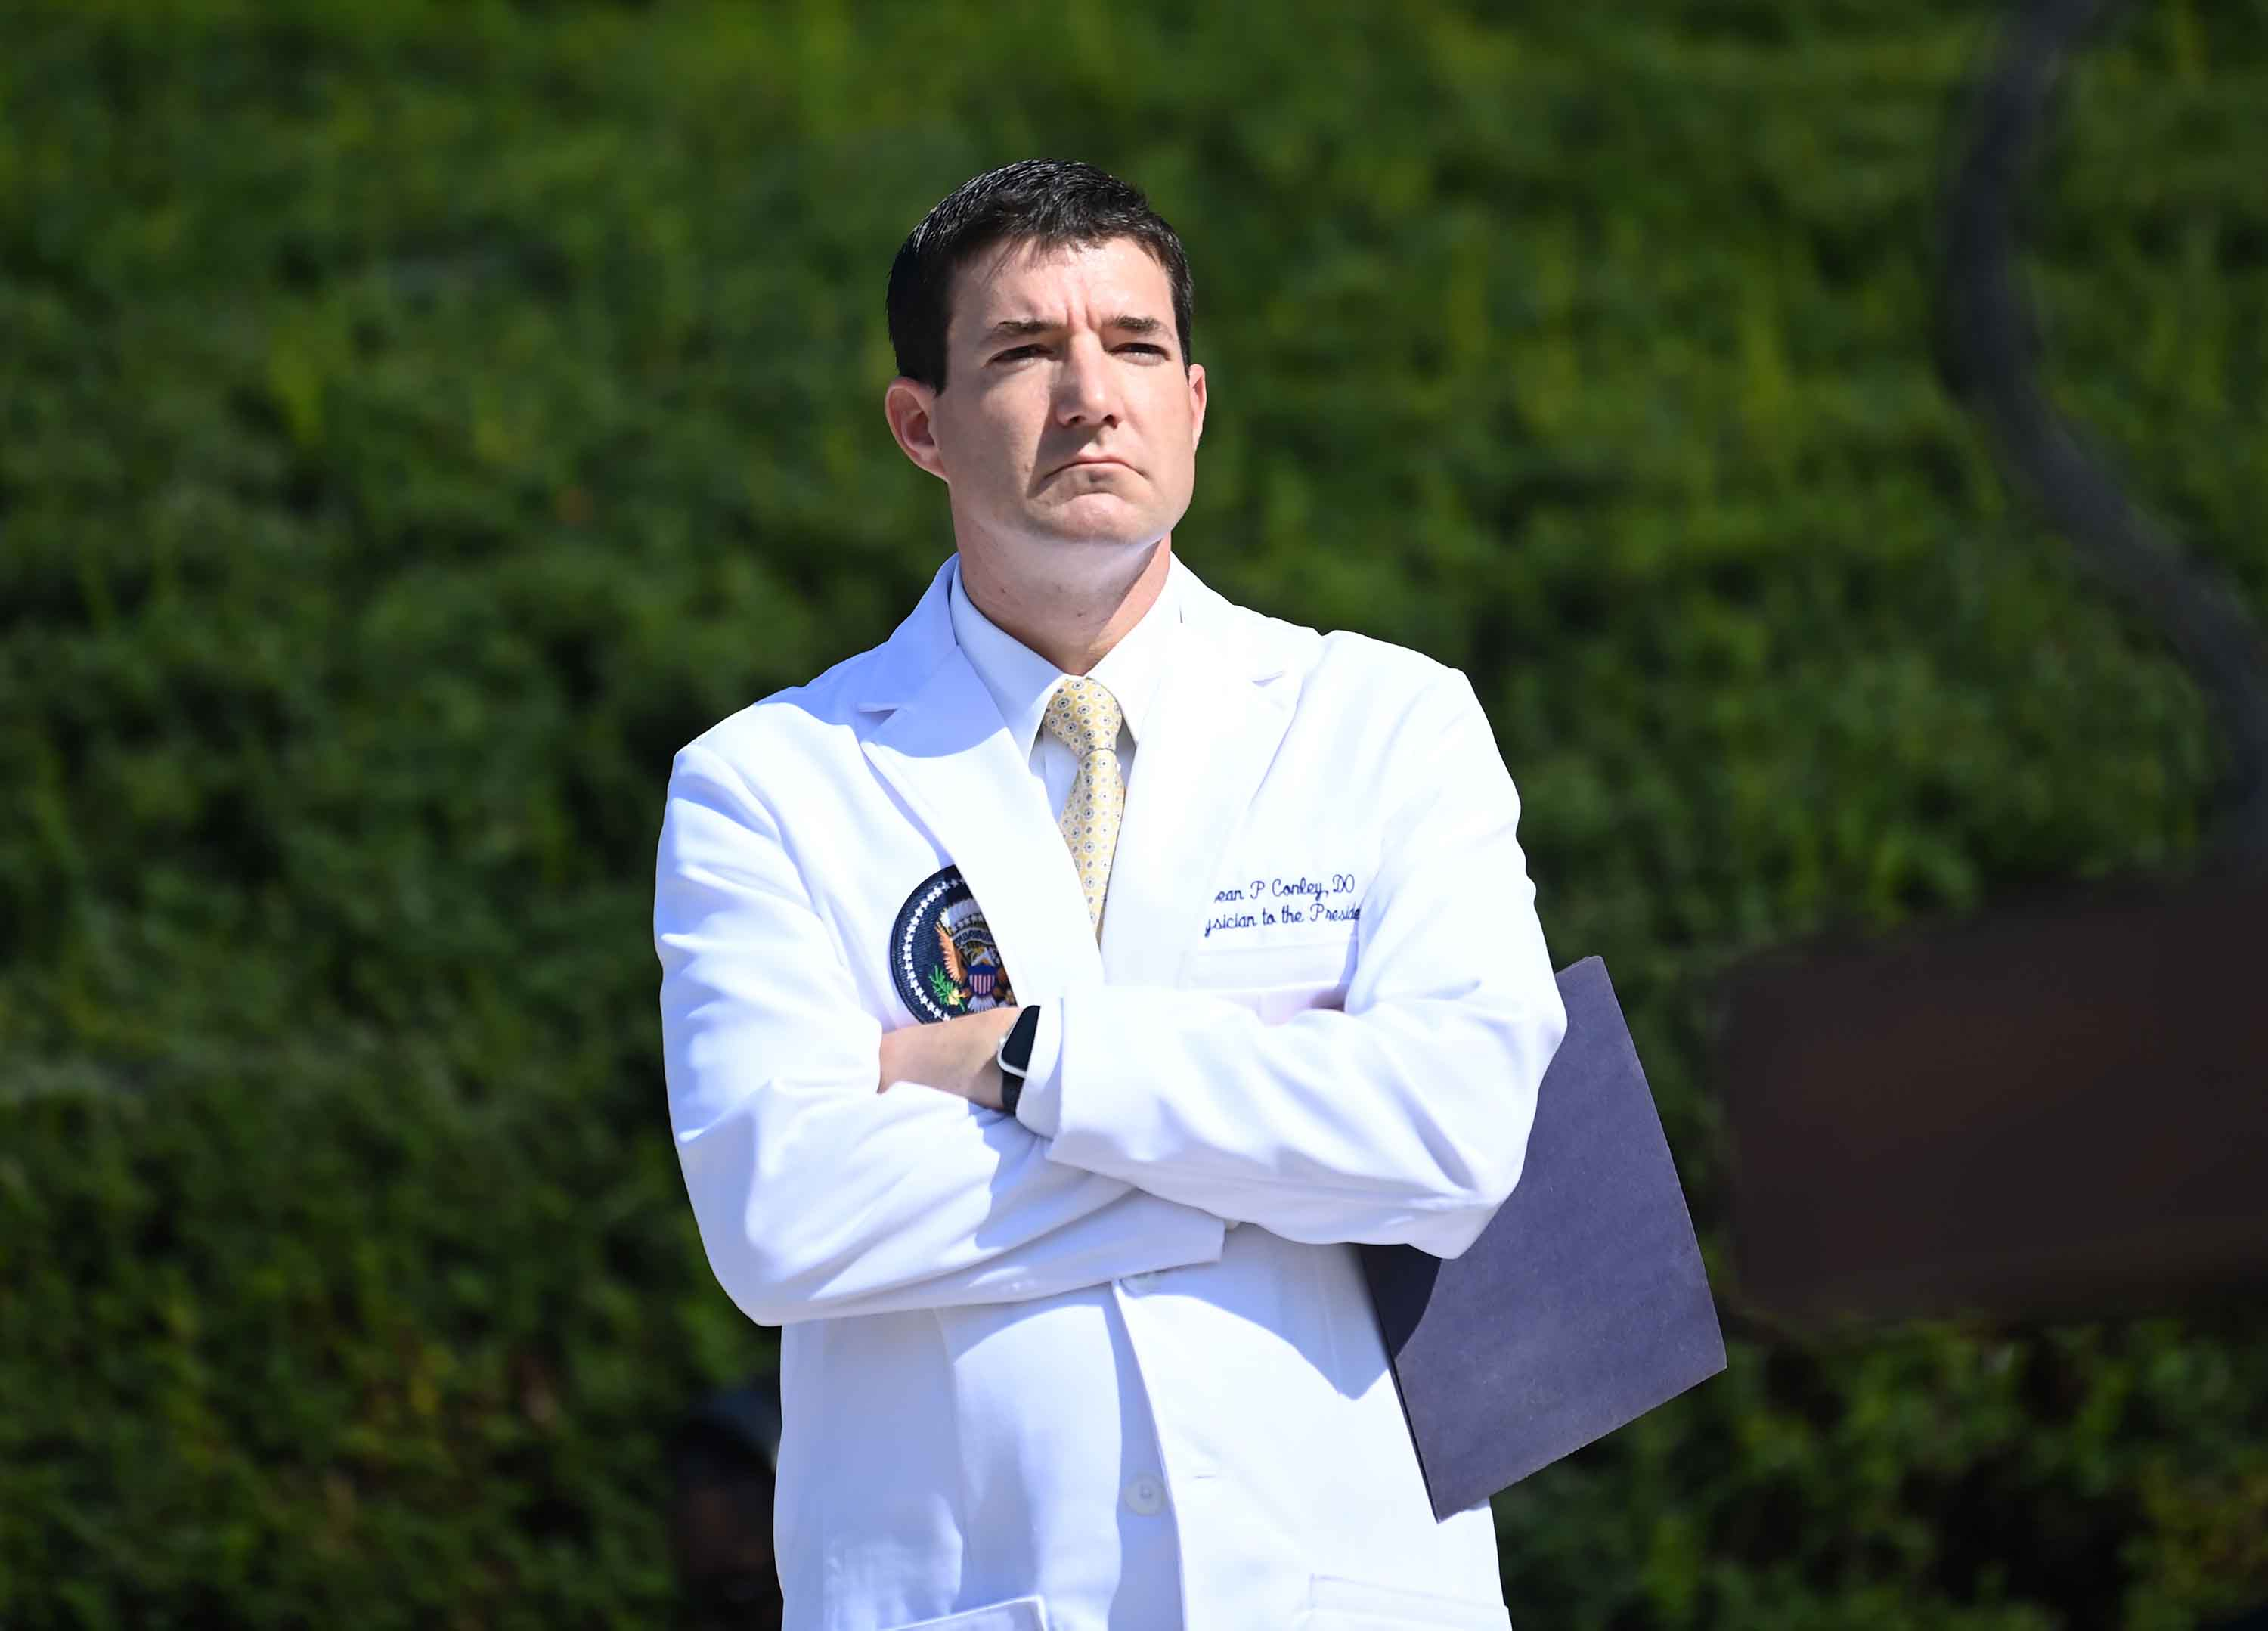 Dr. Sean Conley waits to answer questions during an update on the condition of then-President Trump, on October 4, 2020, at Walter Reed Medical Center in Bethesda, Maryland.